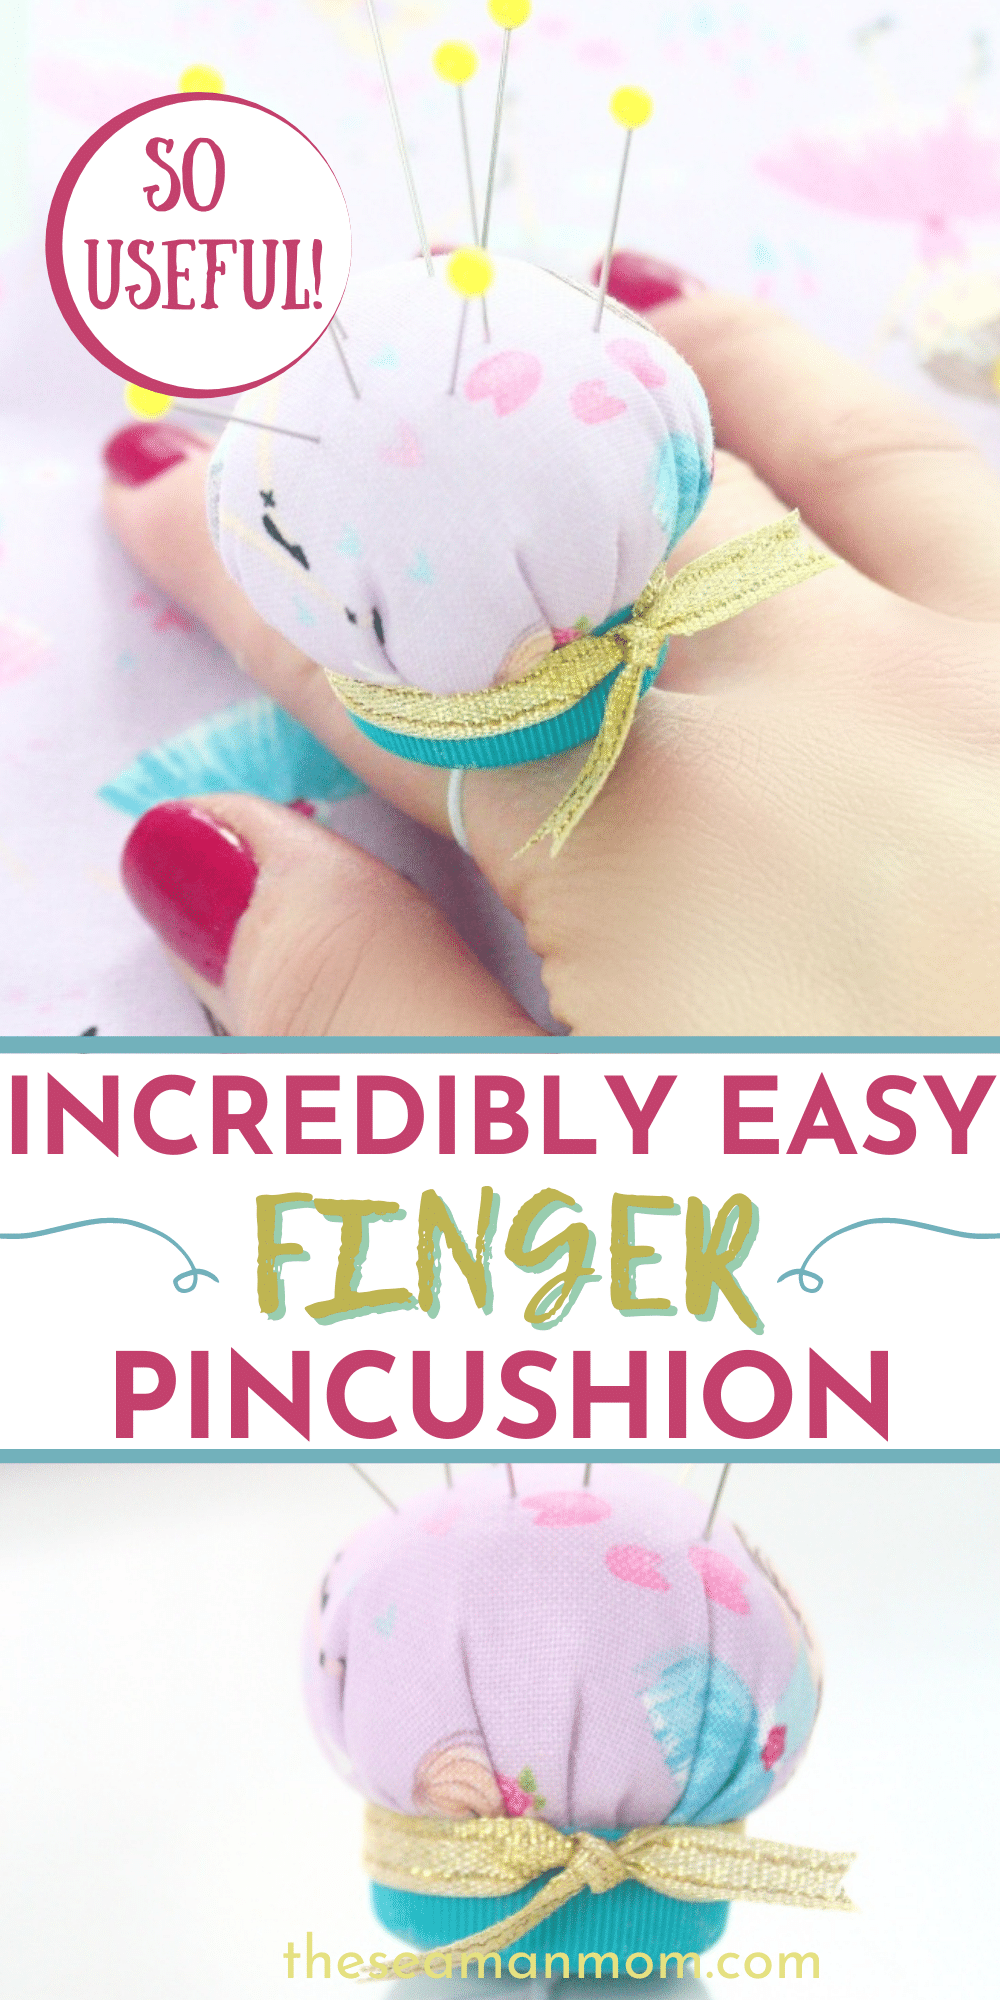 Any sewist needs a pincushion to hold their pins together and on-hand. There are many kinds of pincushions, but a finger pincushion is definitely the cutest ever! This DIY pin cushion is like jewelry for your sewing fingers and is also super easy-peasy, so follow this tutorial to start making your own adorable finger pin cushion. via @petroneagu